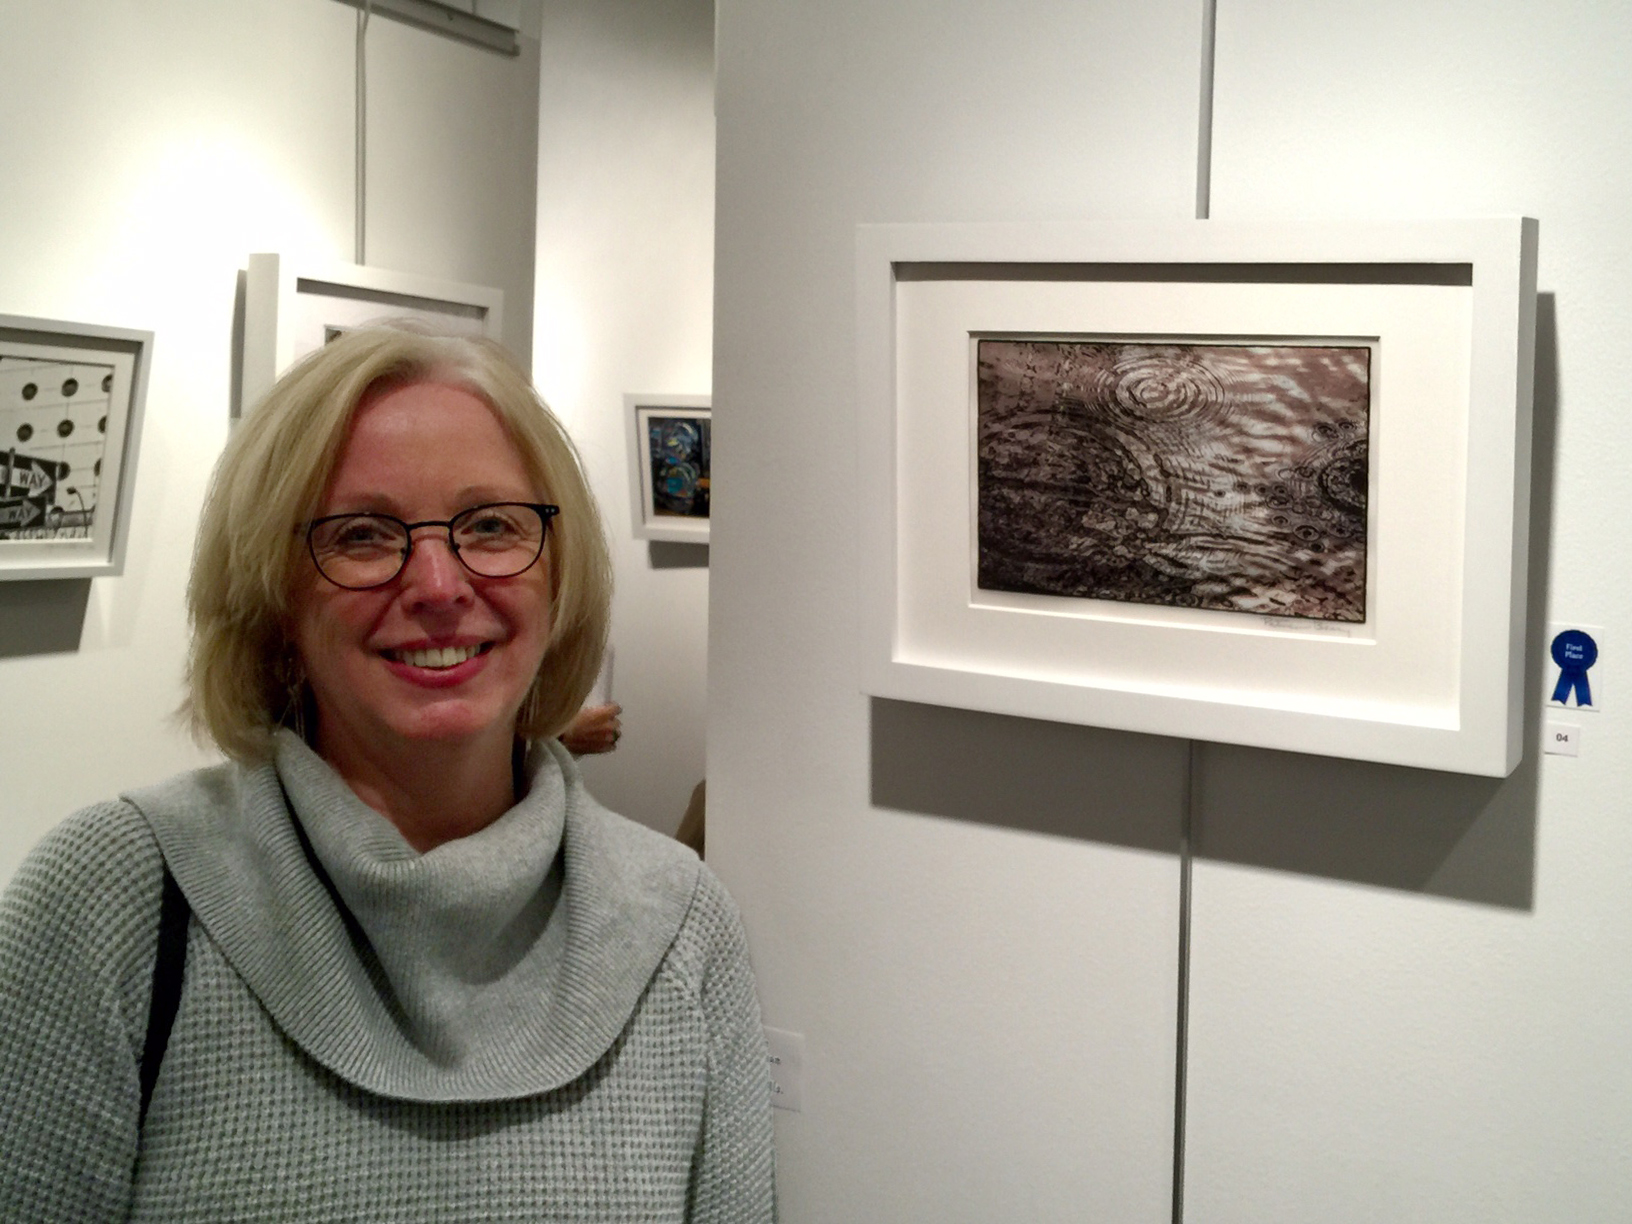 First Place Prize winner Patricia Beary with her work, Worlds Collide